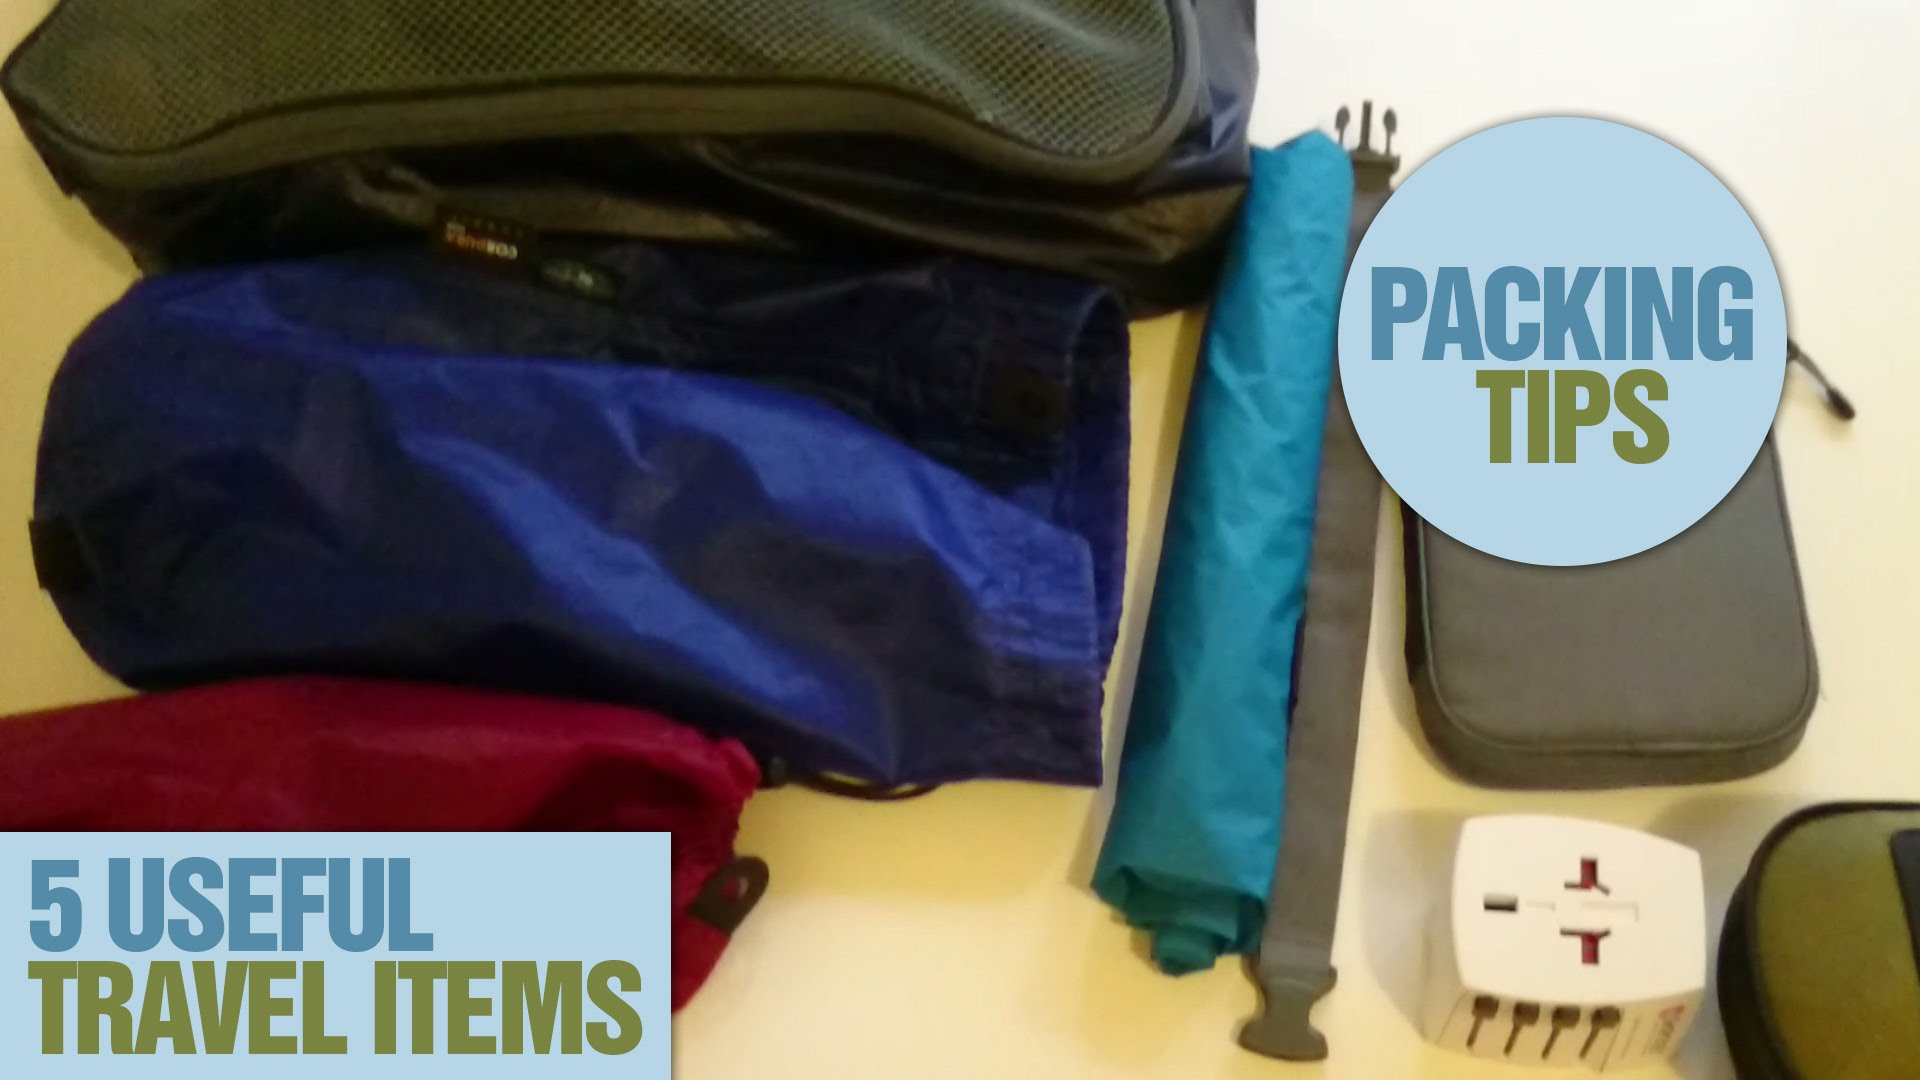 Packing-Tips-5-Useful-Travel-Items